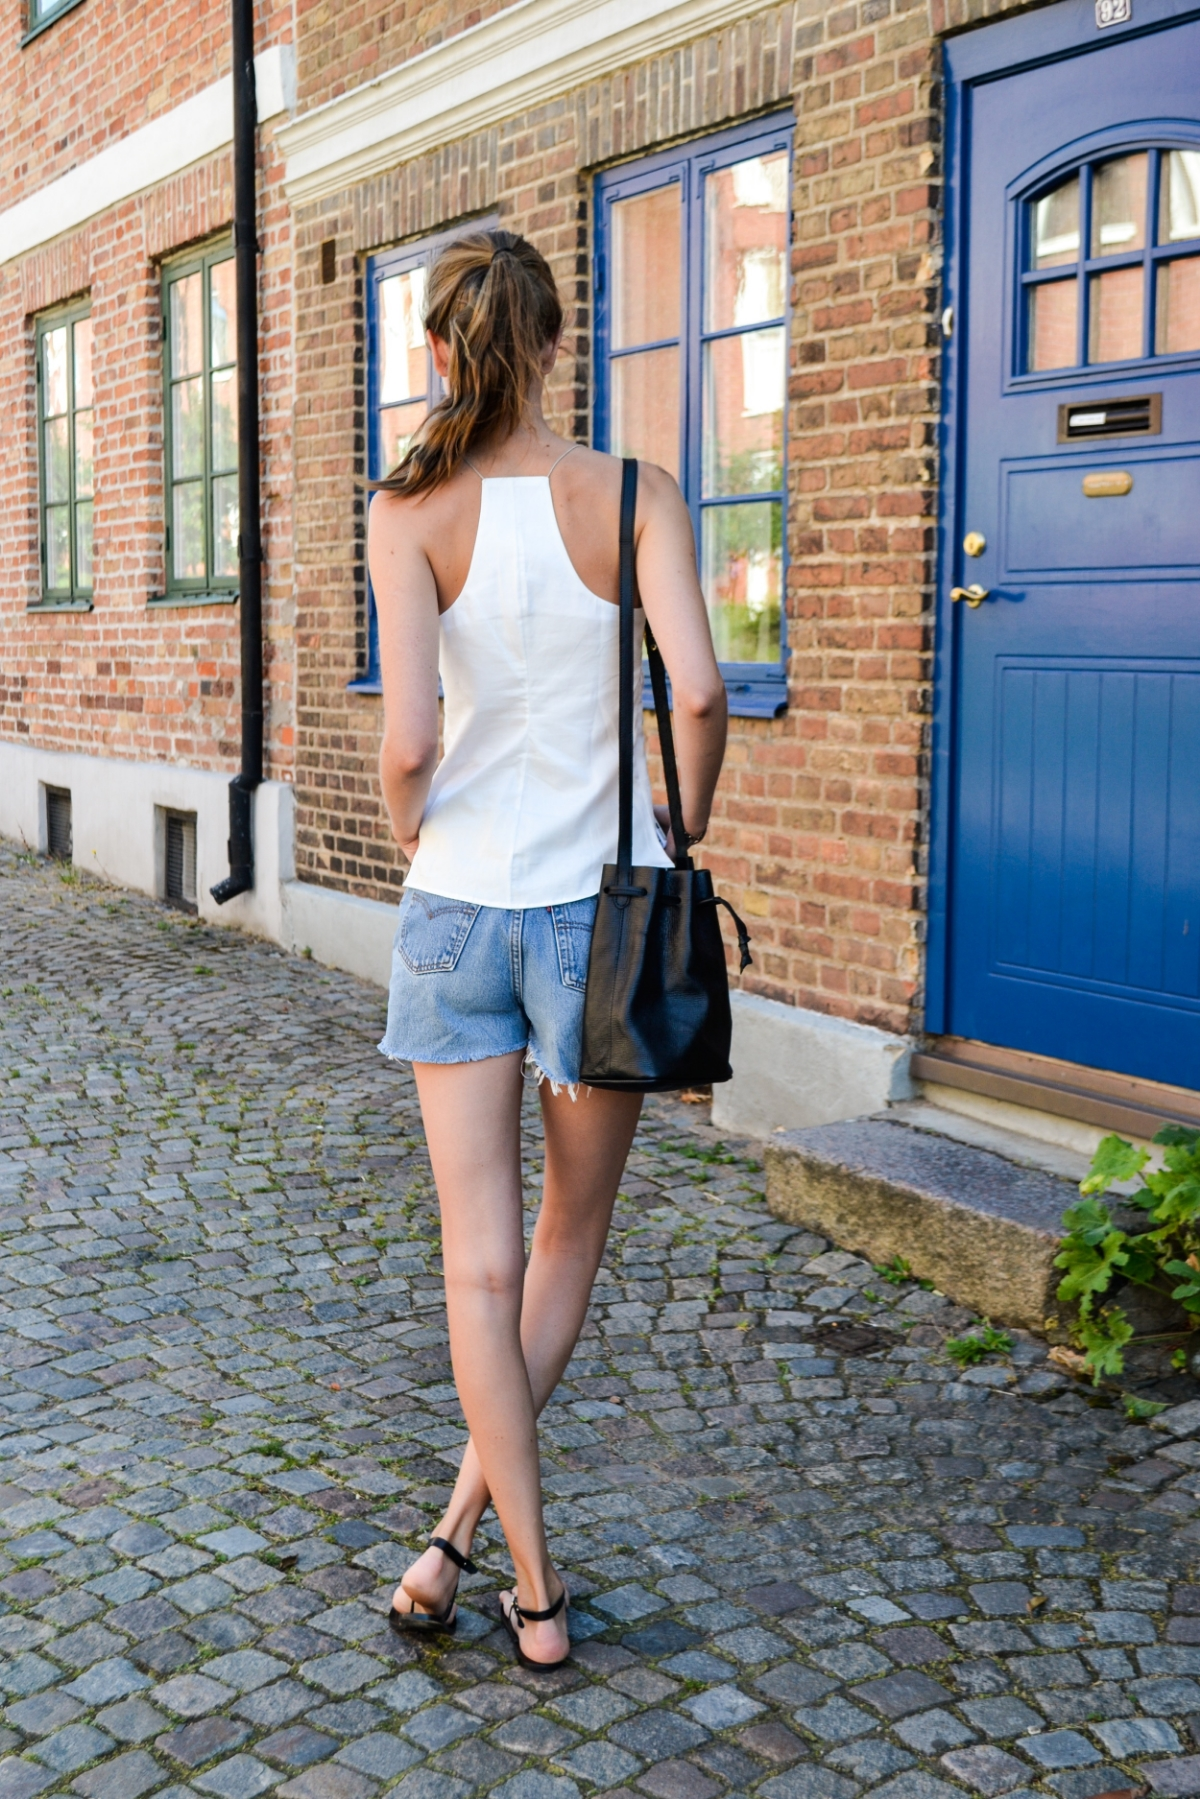 Kim models the Veryan  #009 cami top , second hand Levi's &  ATP Atelier sandals  with her Apapa bucket bag from  Moyi Moyi .